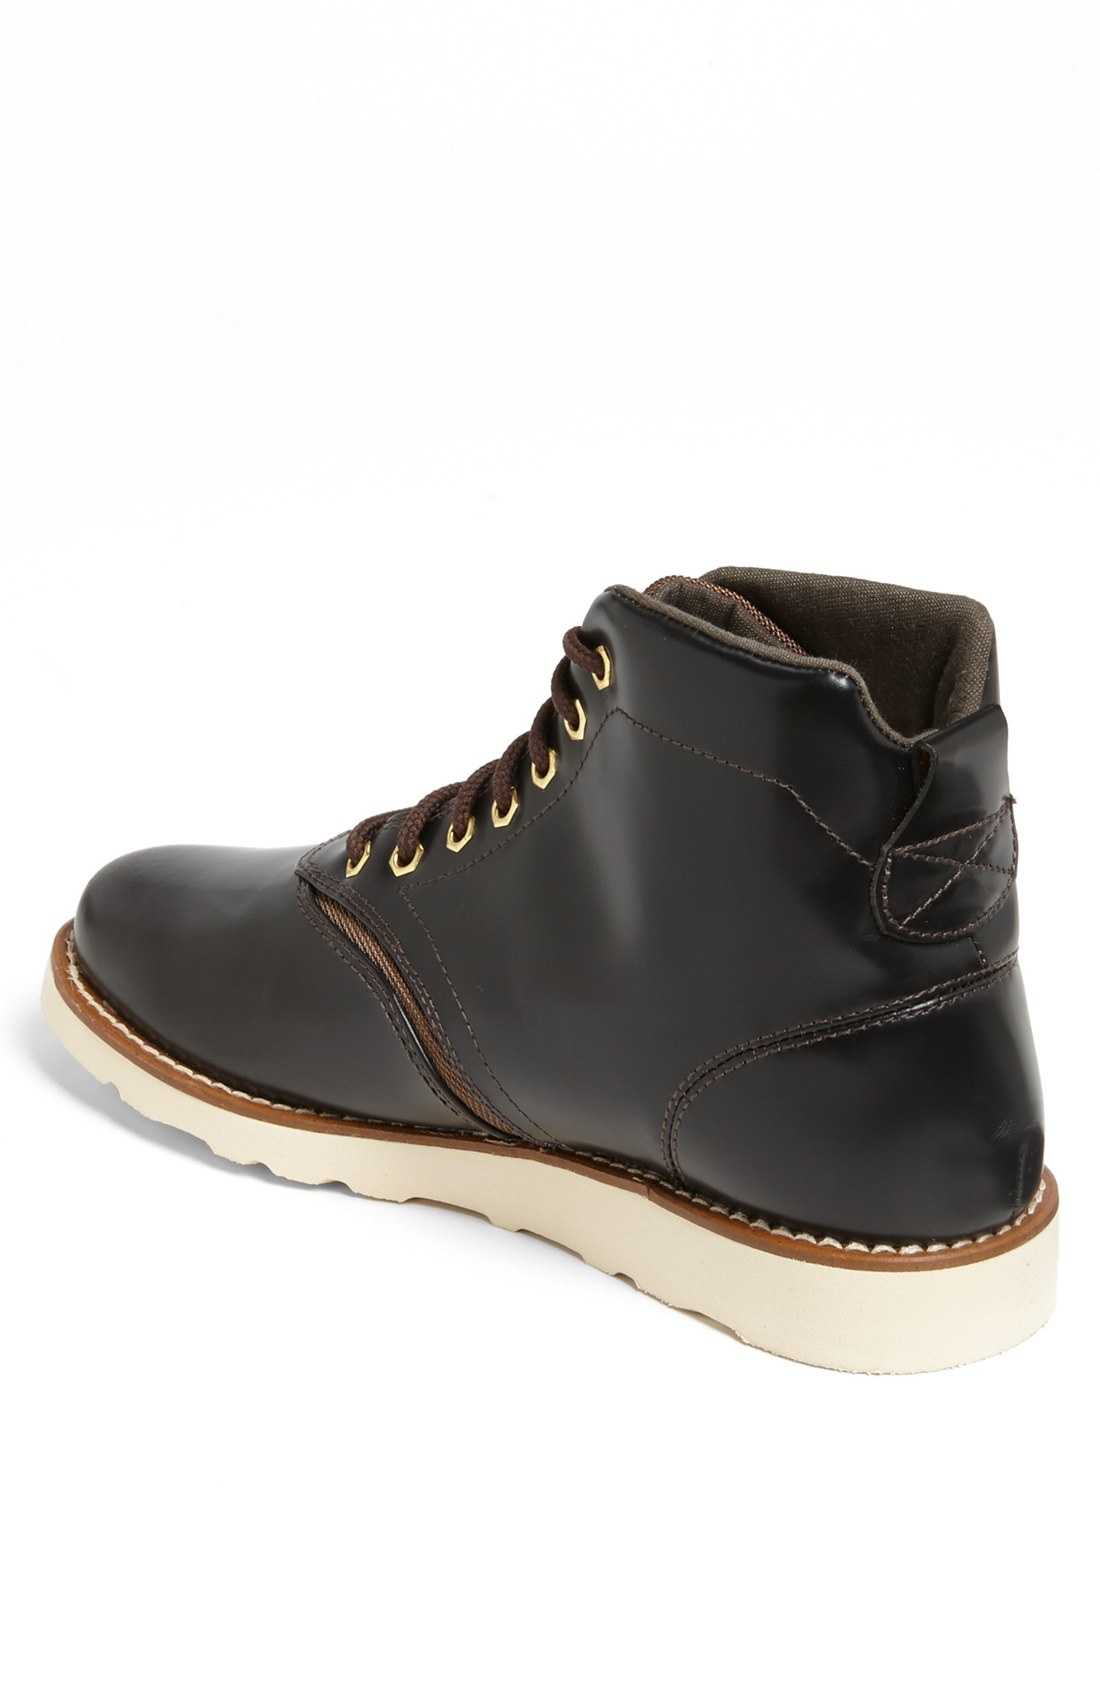 quiksilver marquez boot in brown for lyst